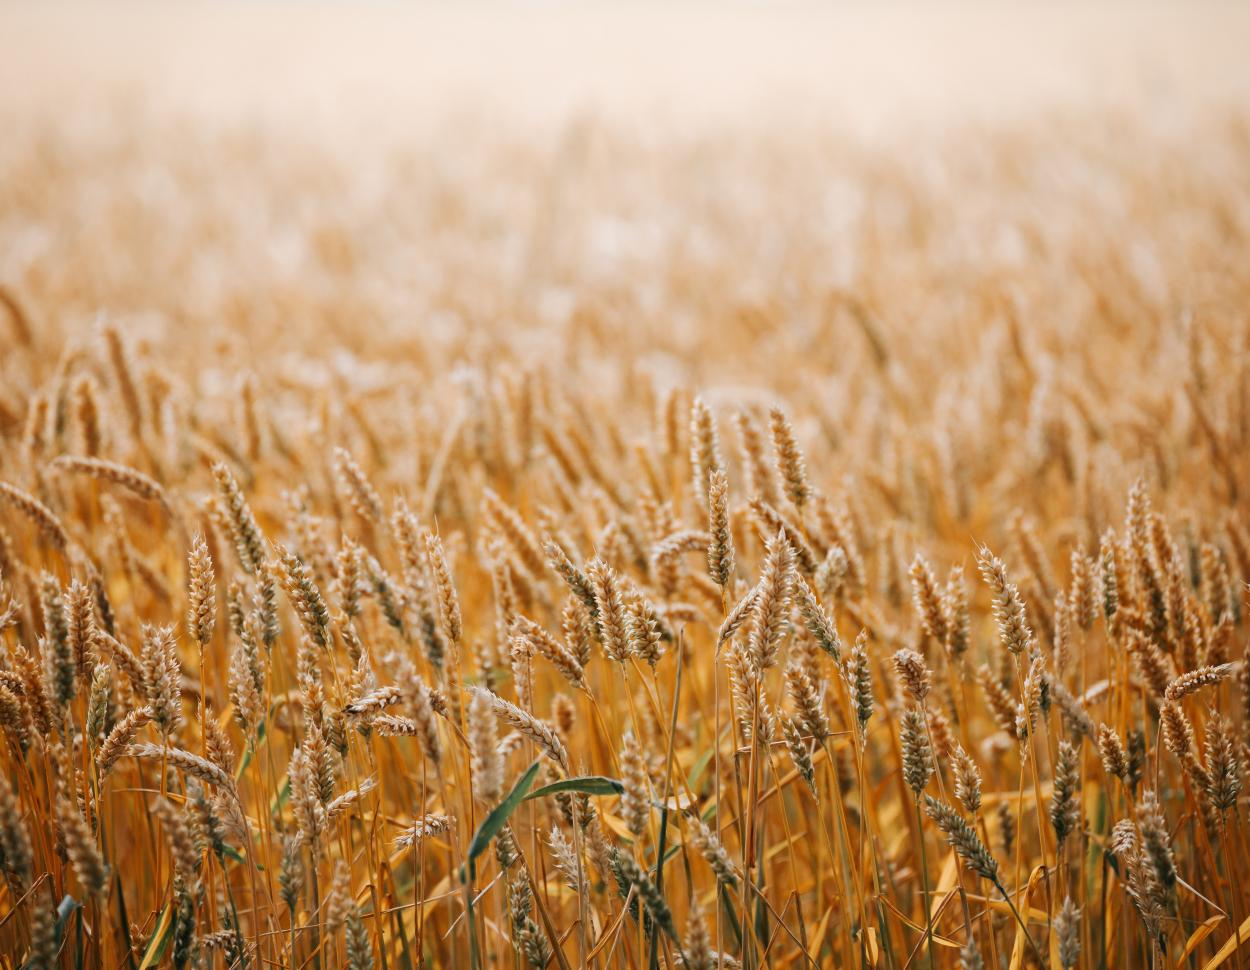 Australia: The huge wheat crop is on the increase